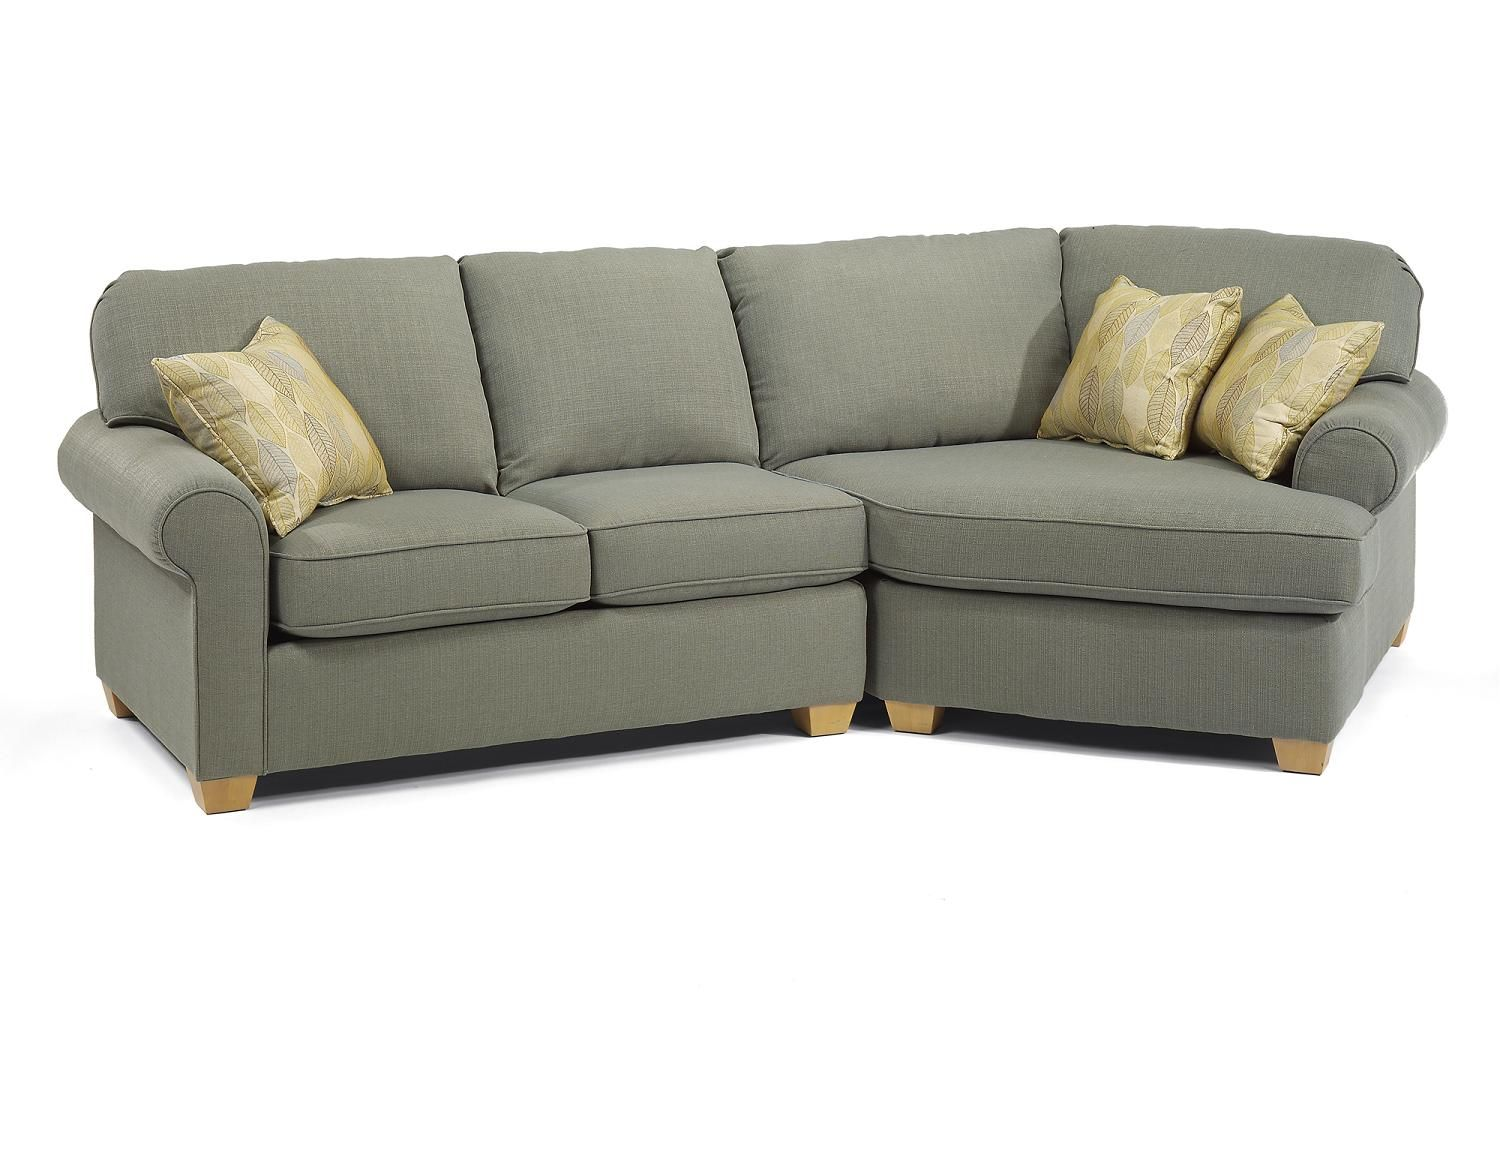 Surprising Angled Chaise Sofa Plymouth Furniture For The Home Theyellowbook Wood Chair Design Ideas Theyellowbookinfo